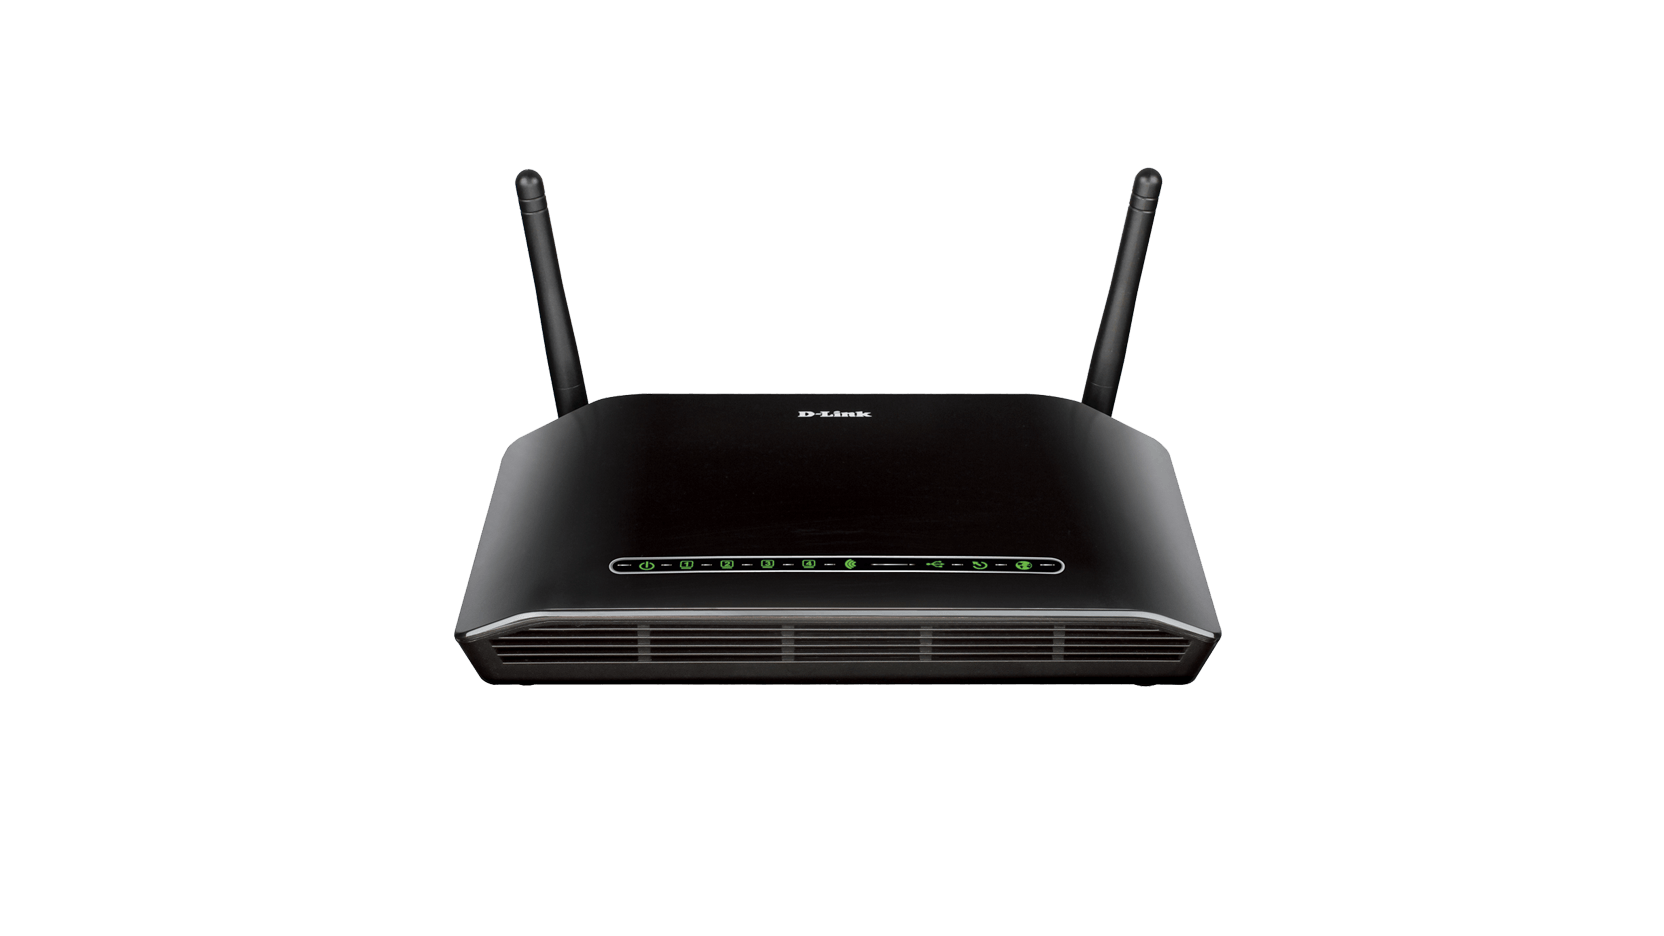 DSL-2750B Wireless N300 ADSL2+ Modem Router | D-Link UK